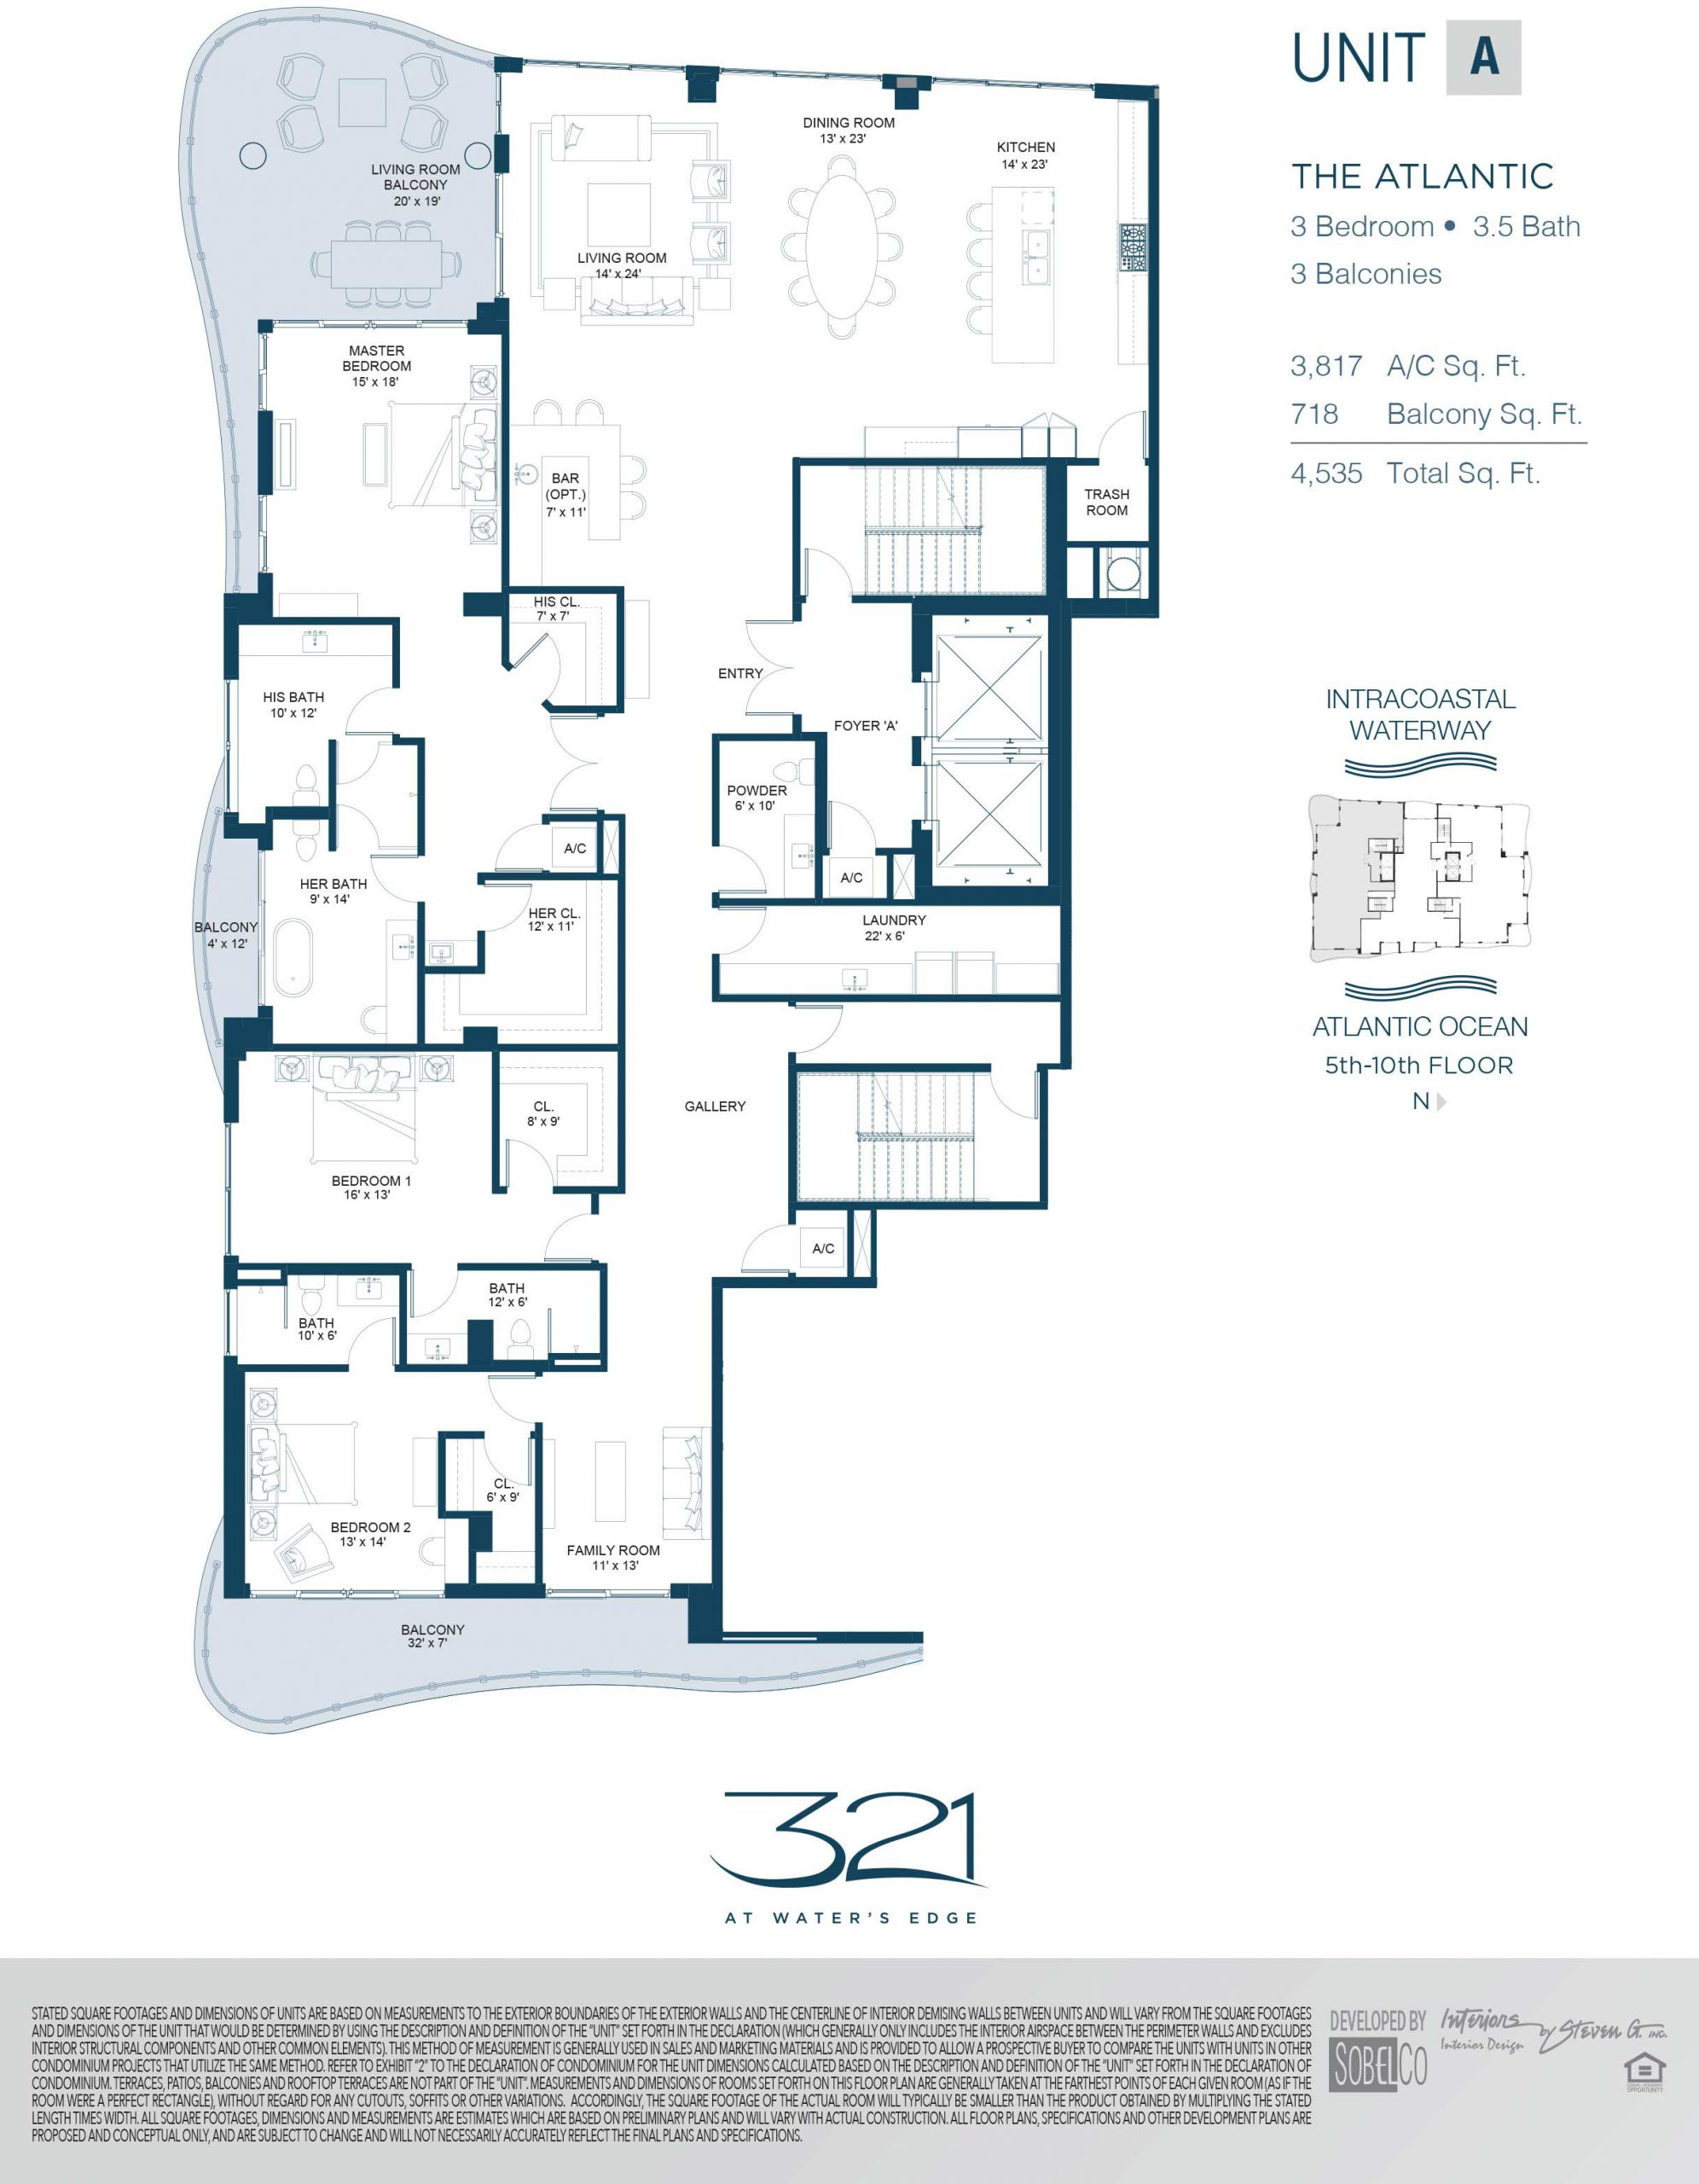 321 At Waters Edge Floor Plans Unit A